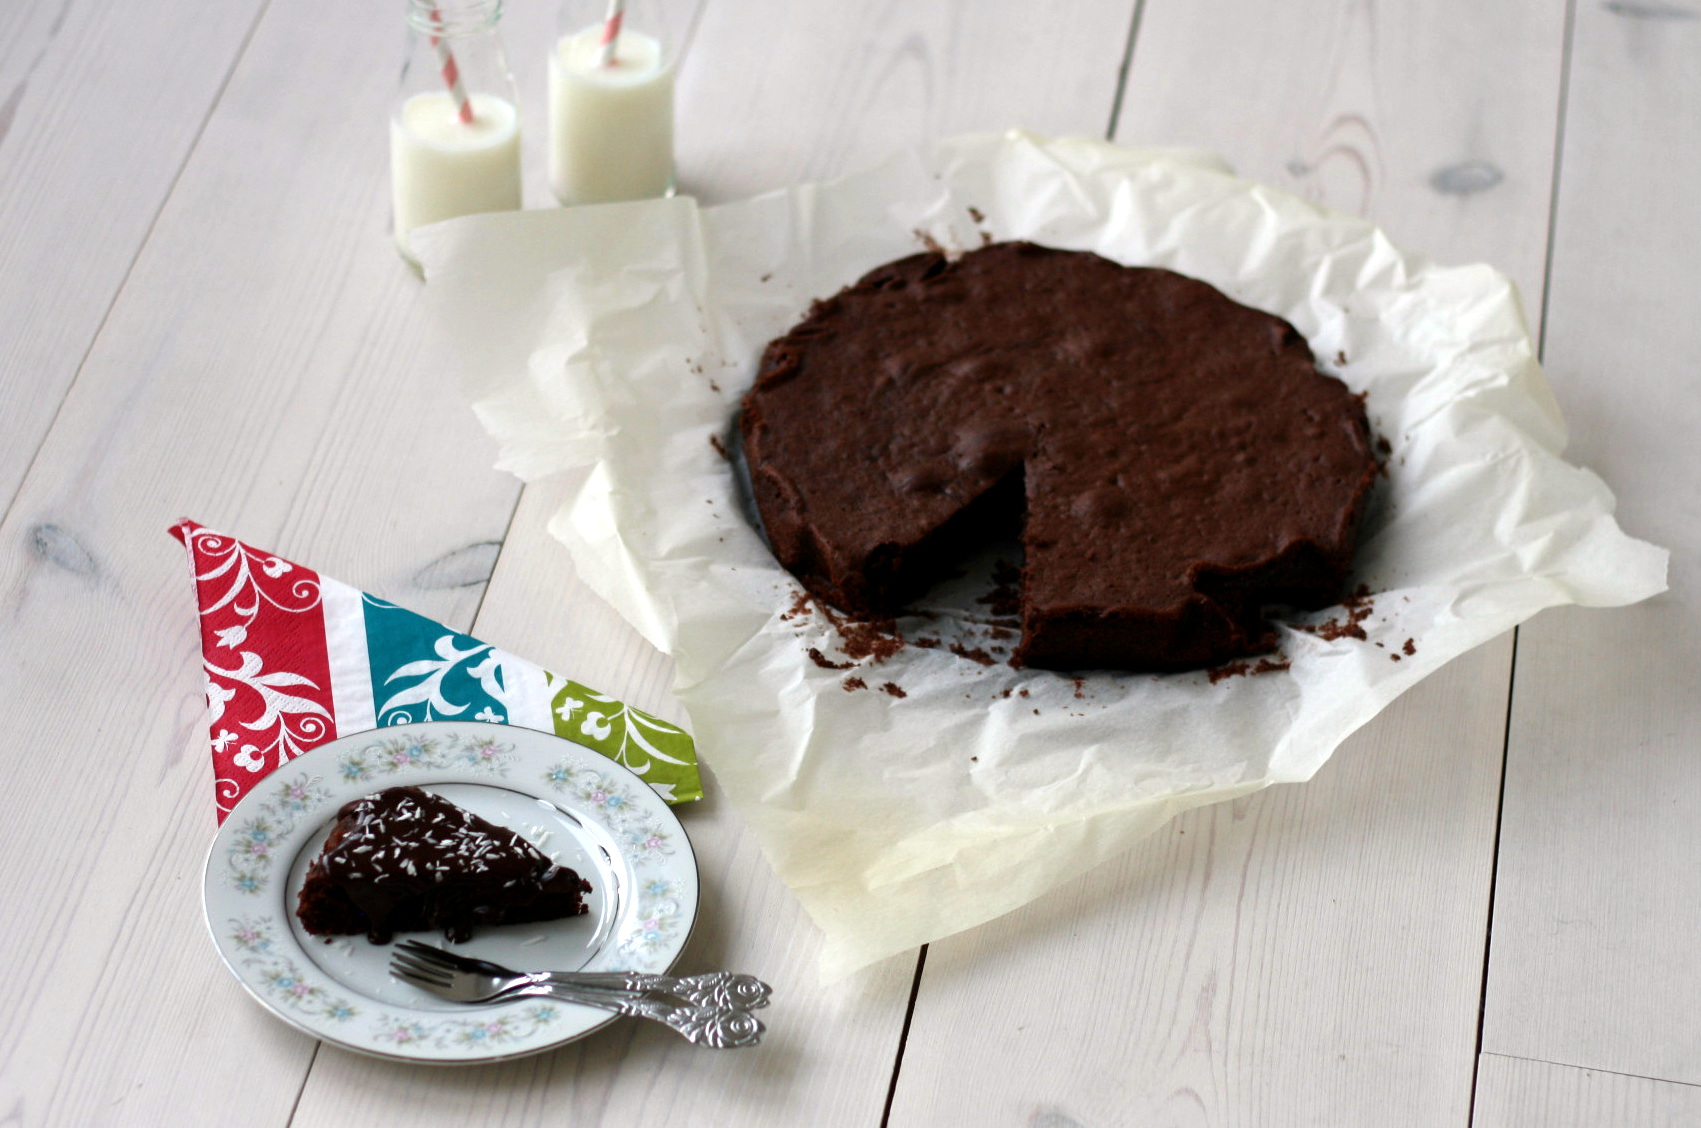 homemade chocolate cake Very Moist and Easy to Bake, recipe